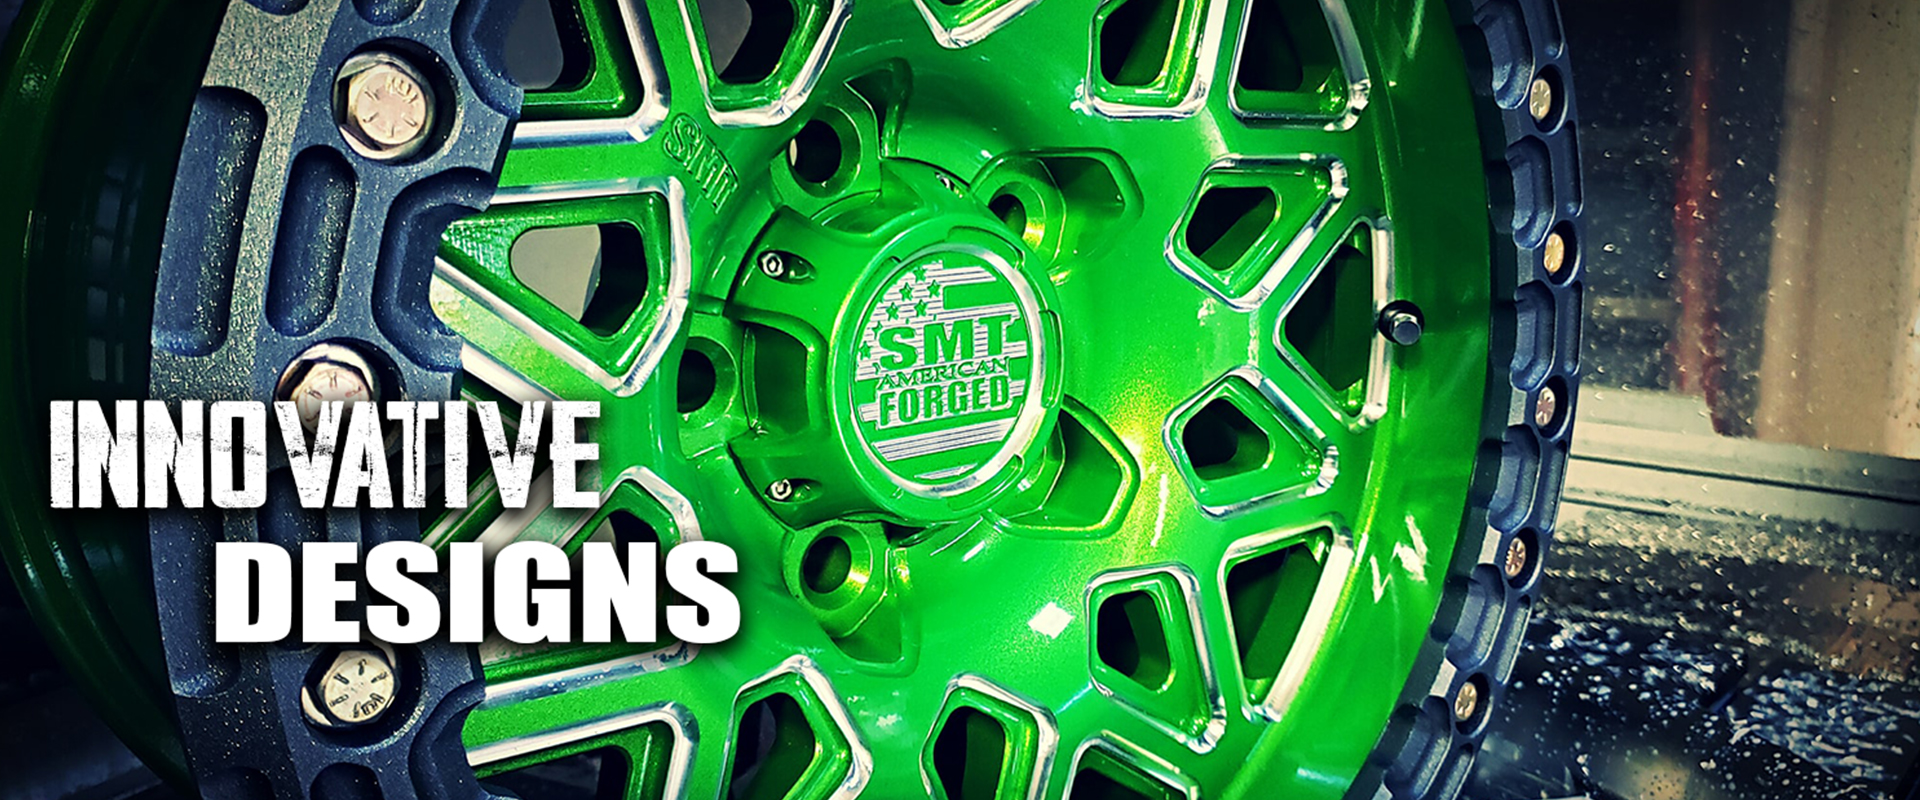 SMT-American-Forged-Off-Road-Truck-Wheels-RS4-banner-Innovative-Designs